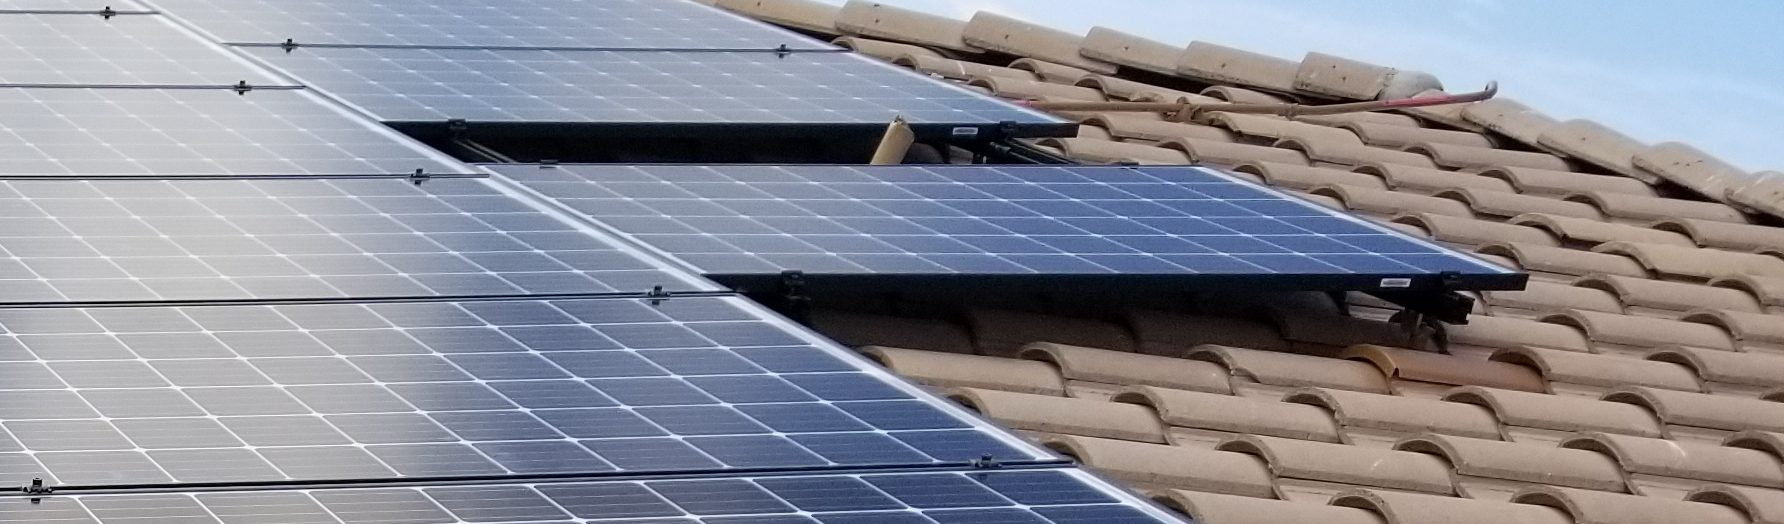 Owning Solar VS Leasing